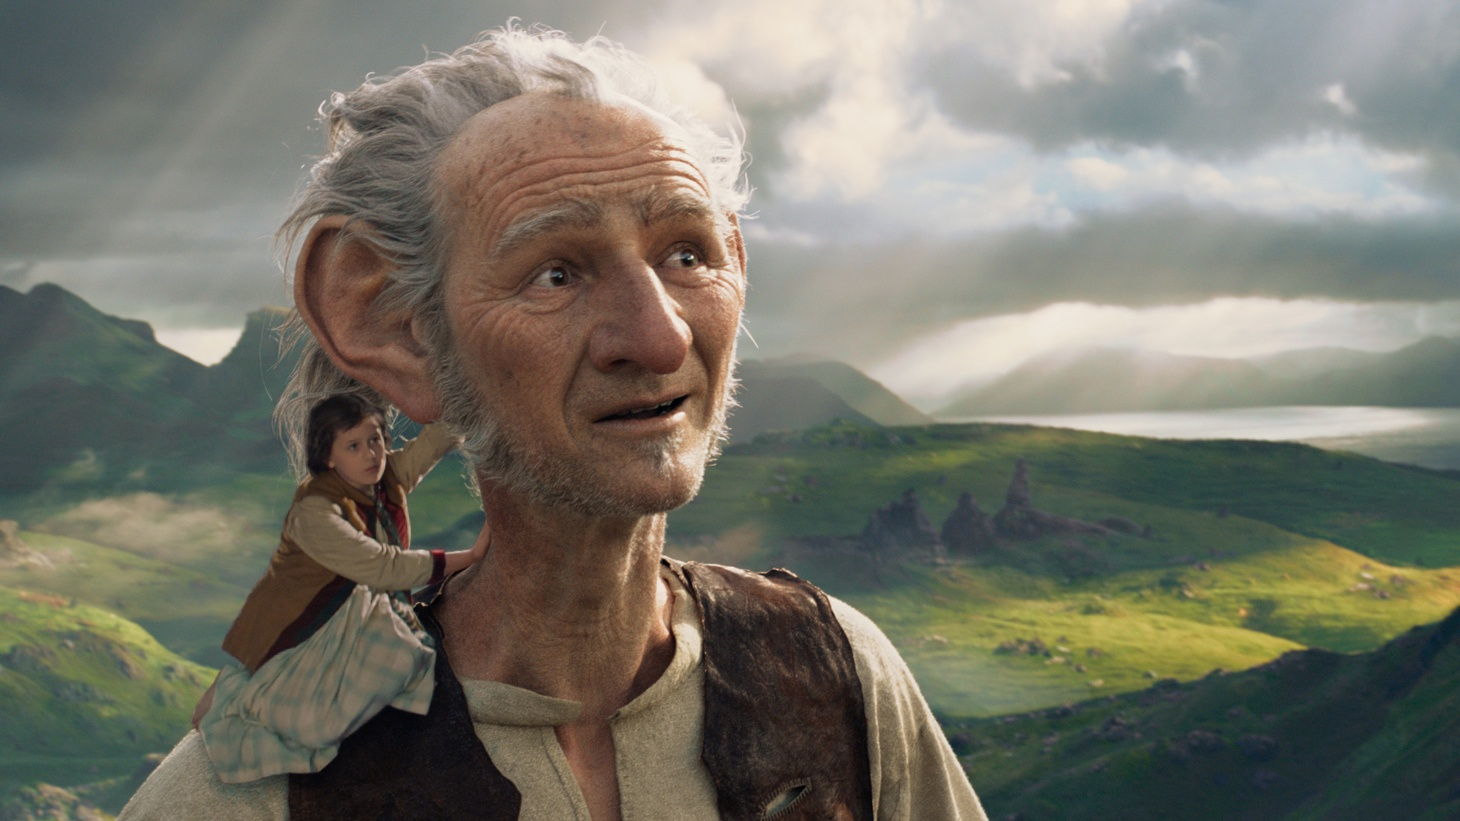 Spielberg uses digital wizardry to throw spectacular dreams of friendship and adventure on the big screen.